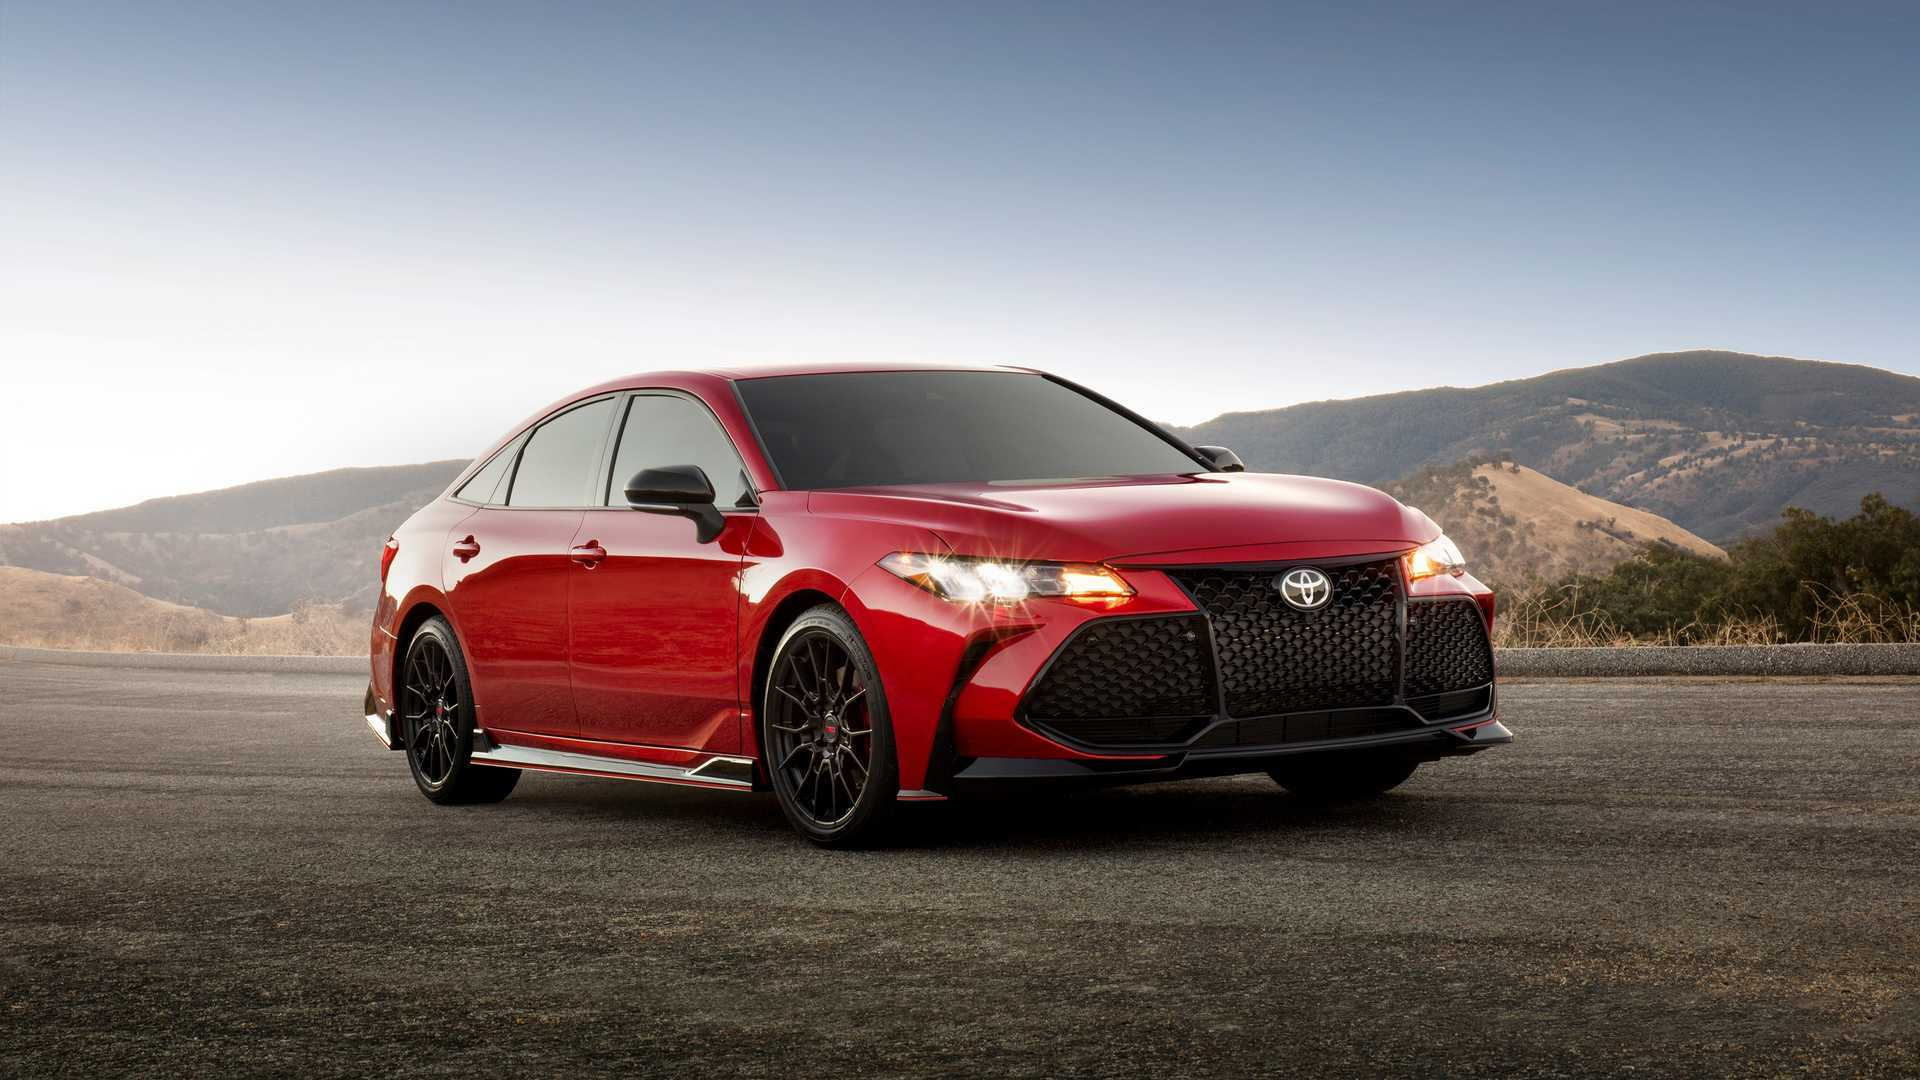 60 All New Toyota In 2020 Release